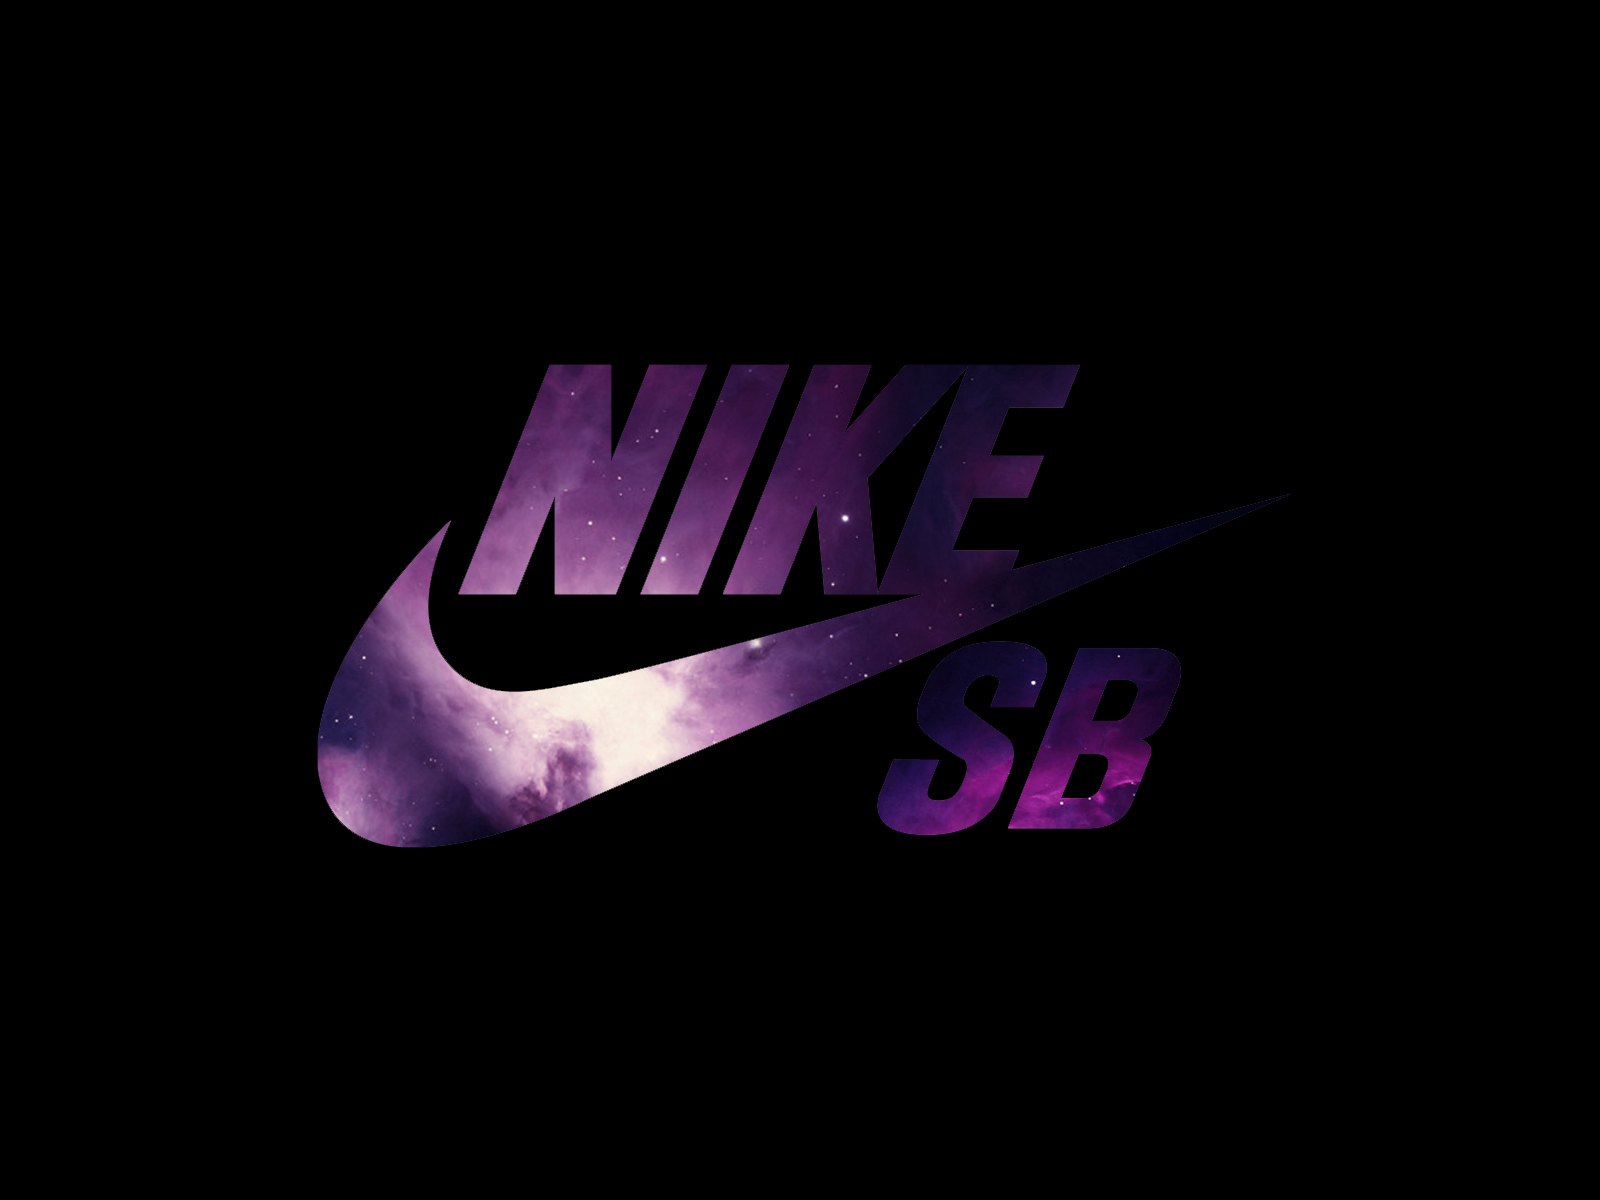 Fascinating Nike Basketball Iphone Wallpaper Large Hd Database. Amazing Nike Logo Background Wallpaper